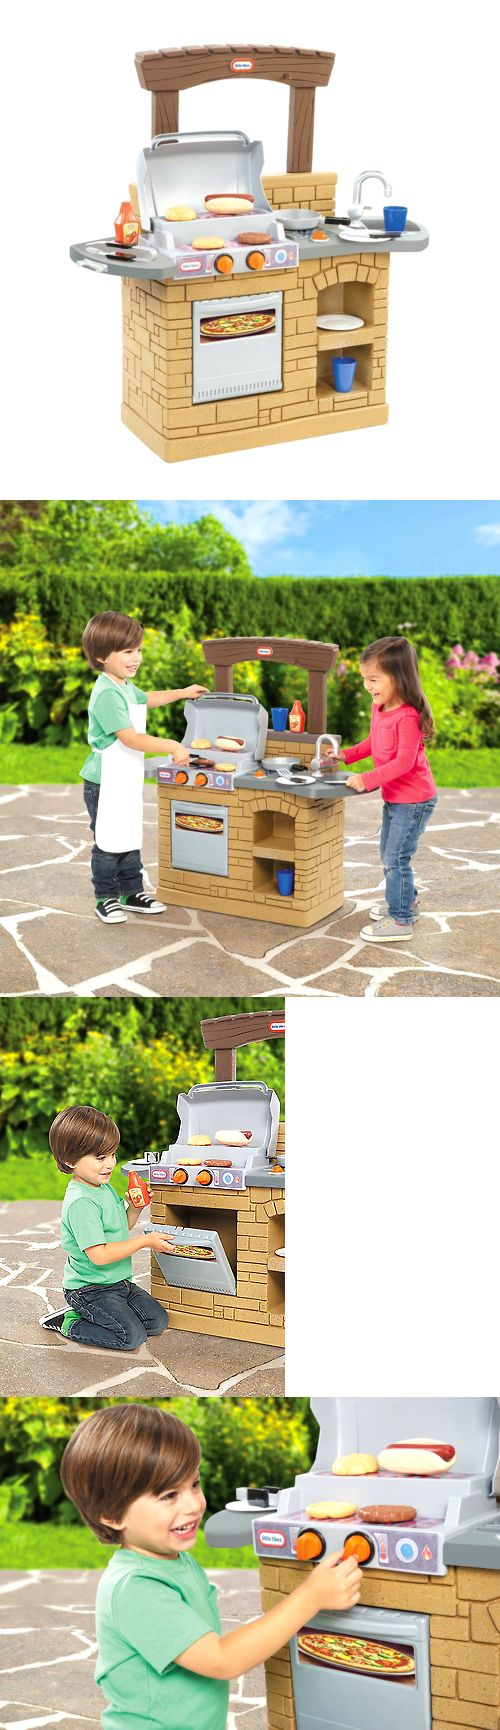 Child Size 2574: Little Tikes Cook Play Outdoor Bbq Kitchen Toys For Kids Grill Make Fun Sounds! -> BUY IT NOW ONLY: $63.24 on eBay!